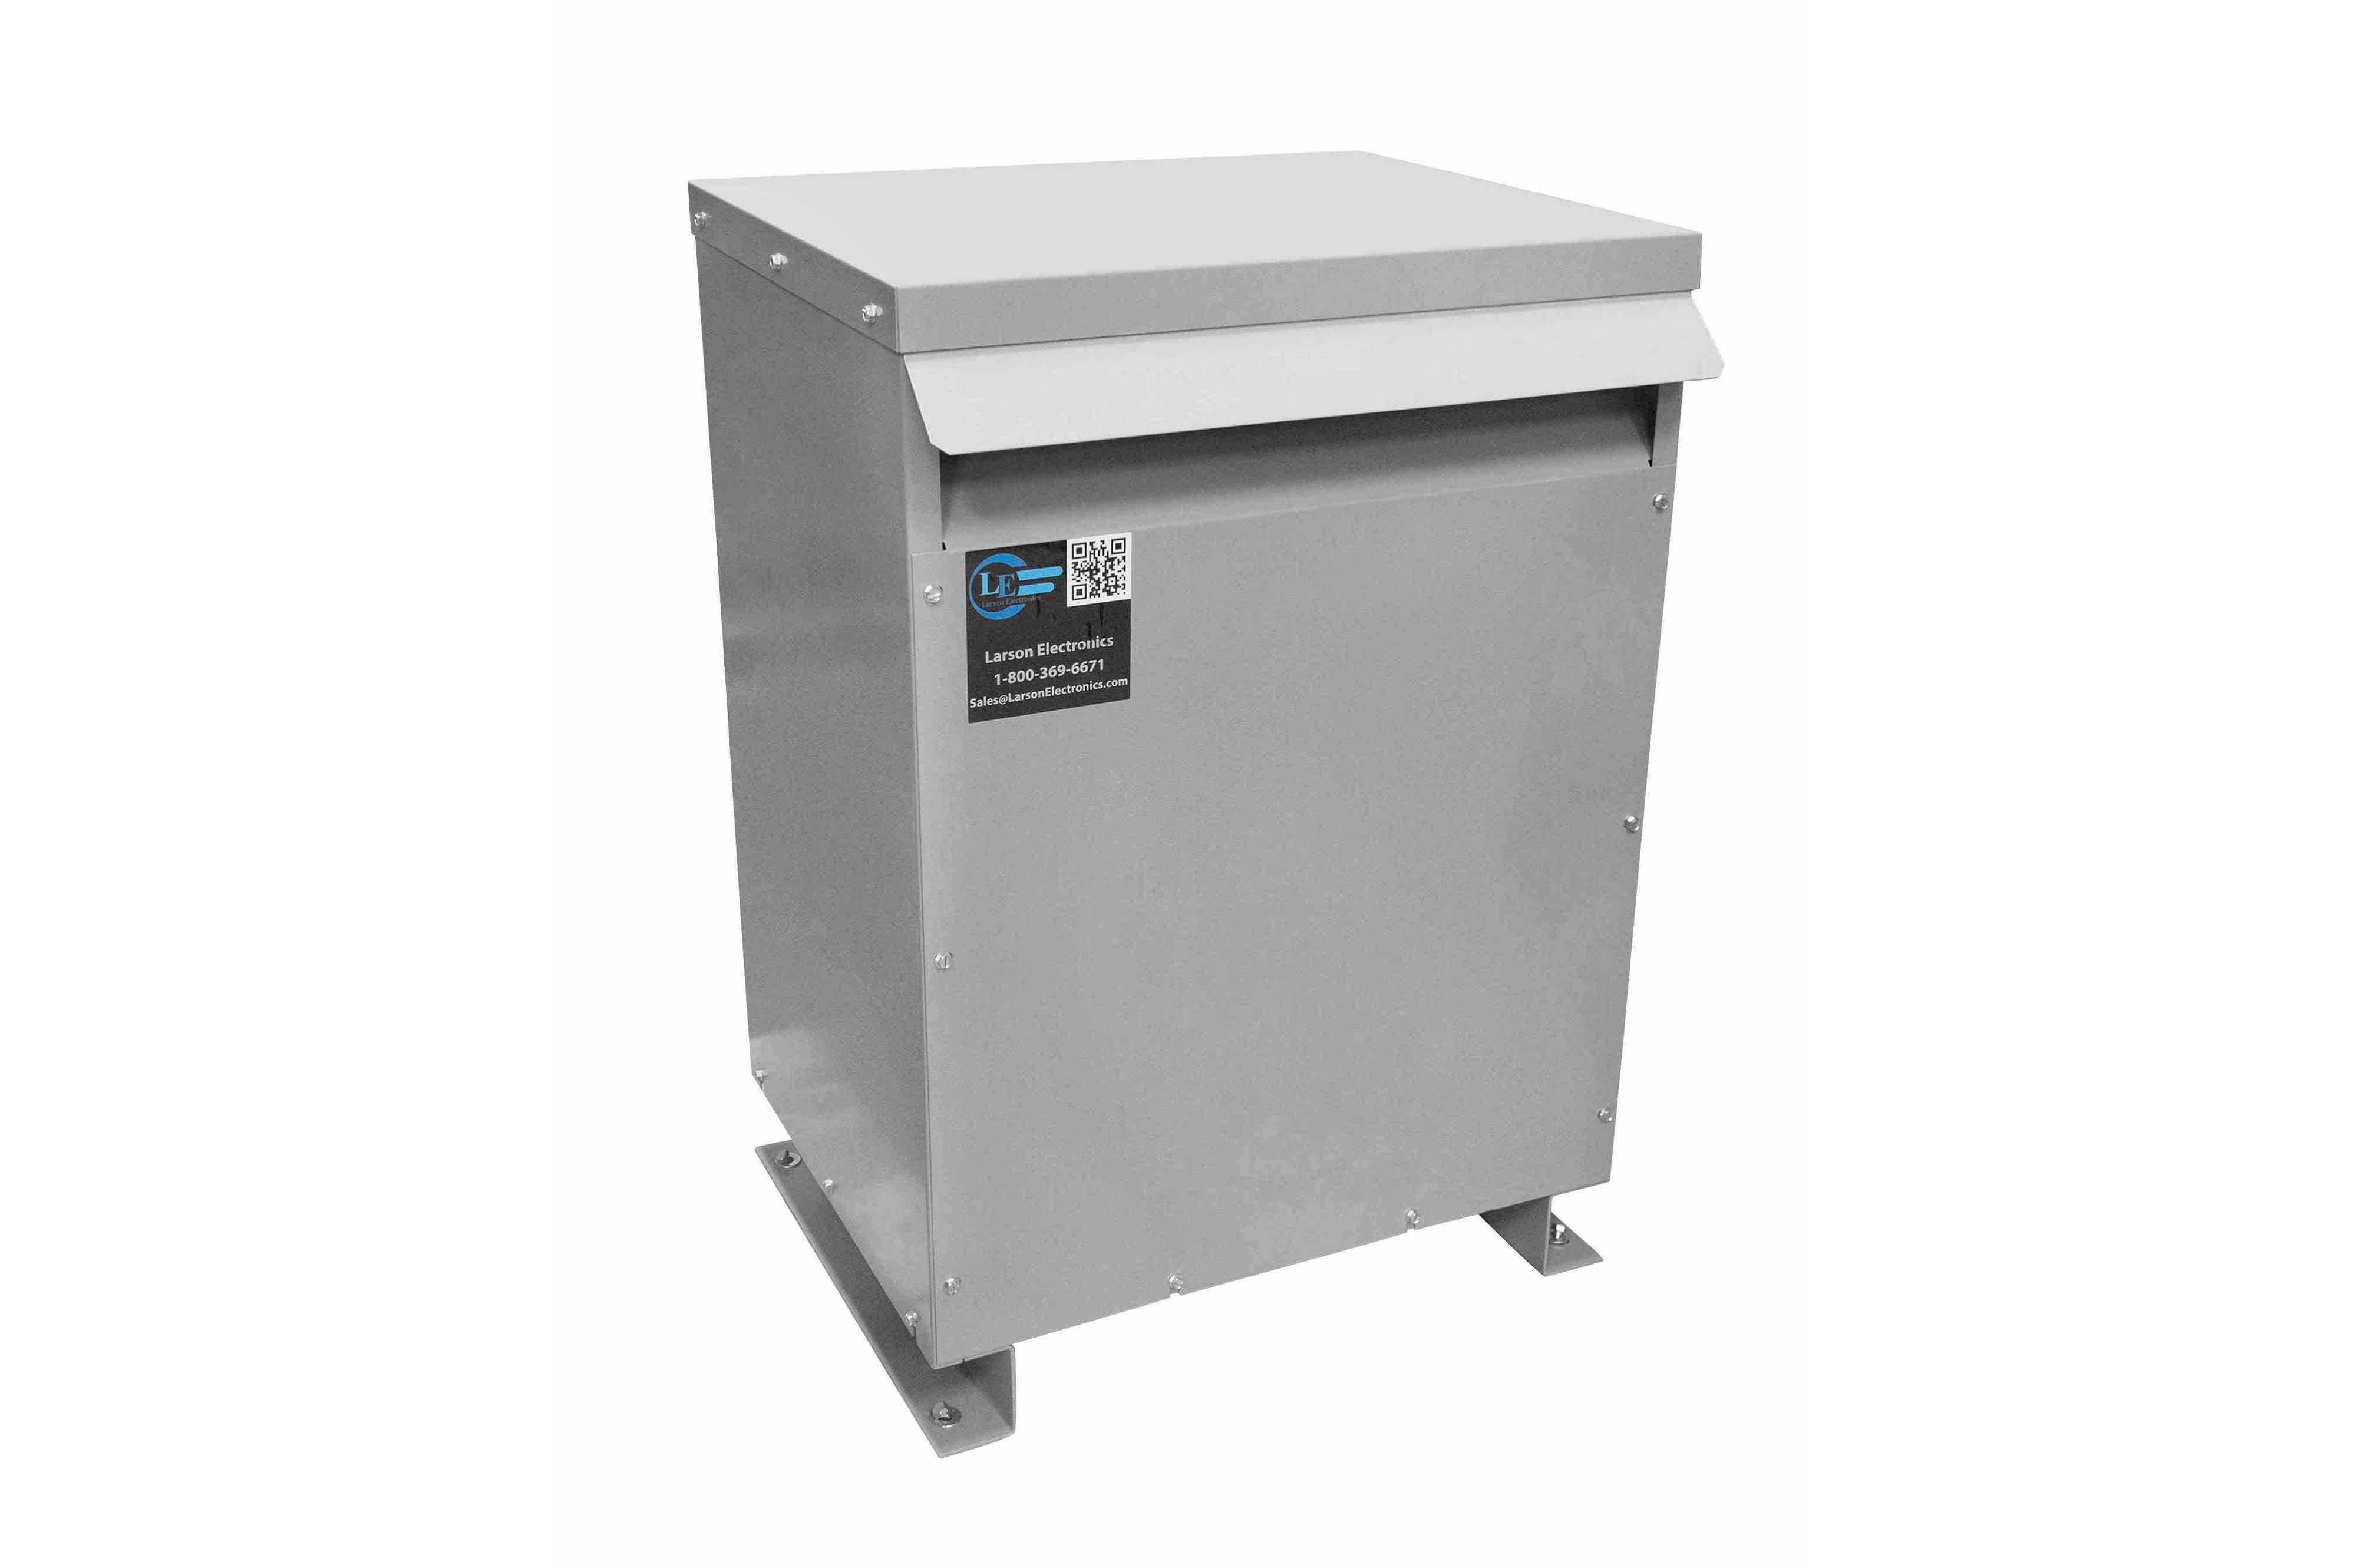 600 kVA 3PH Isolation Transformer, 600V Delta Primary, 208V Delta Secondary, N3R, Ventilated, 60 Hz